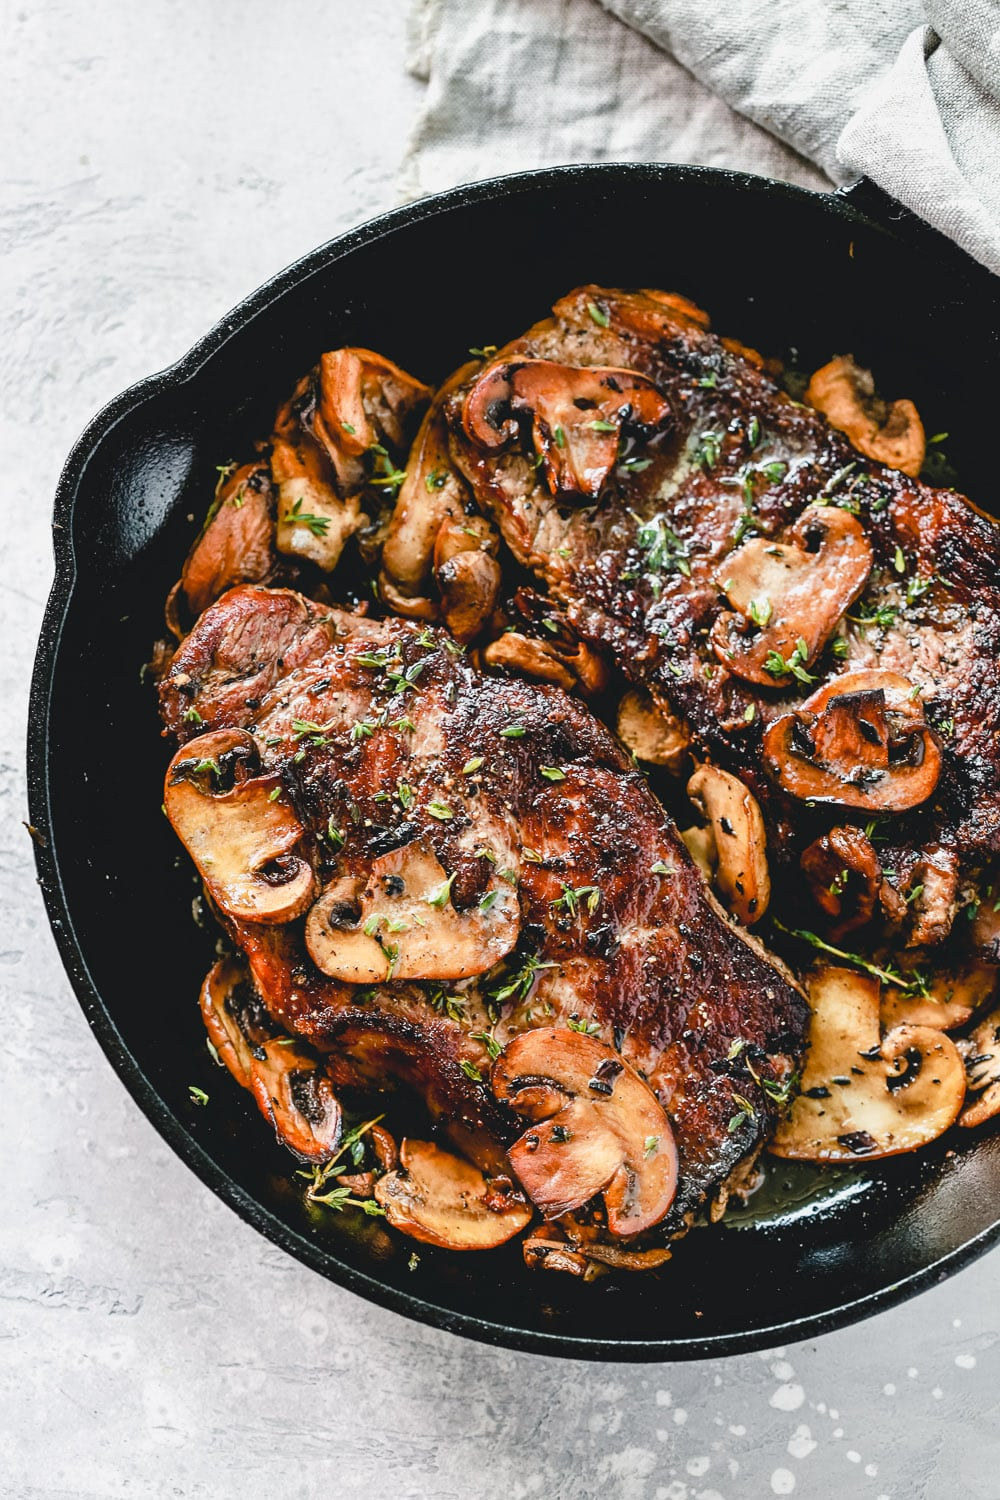 Juicy Pan Seared Steak with Mushrooms